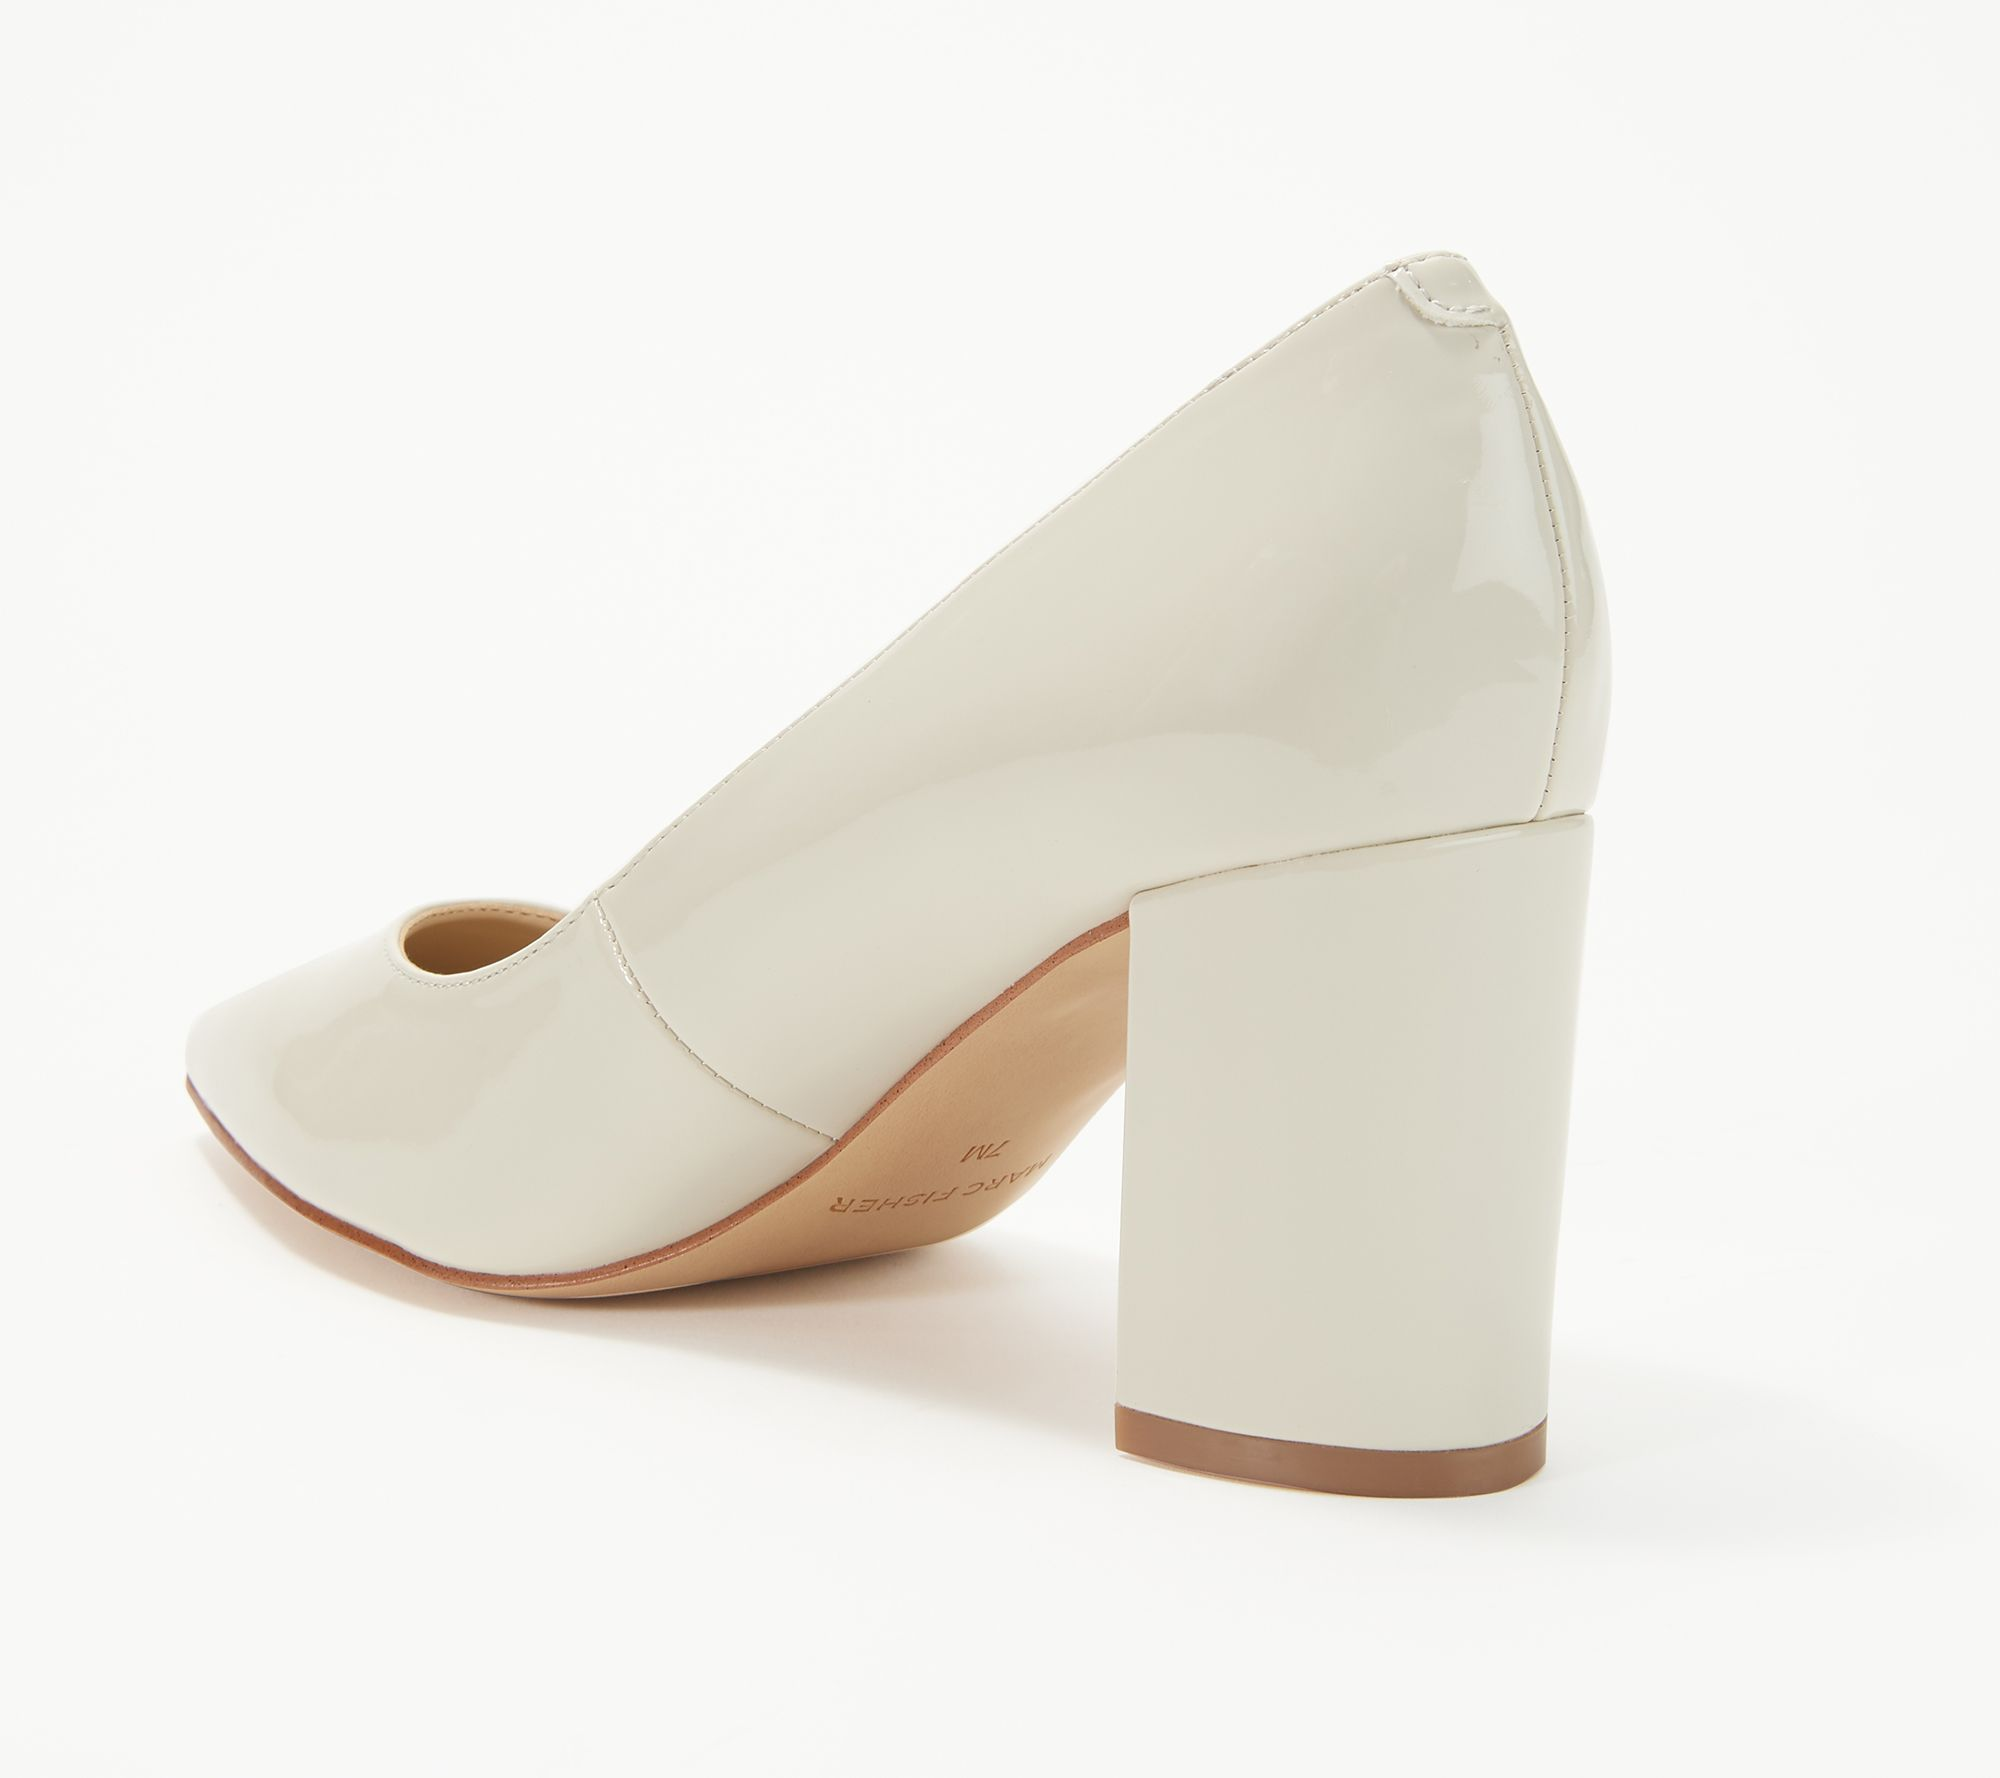 45c71d08479 Marc Fisher Pointy Toe Block Heel Pumps - Claire - Page 1 — QVC.com